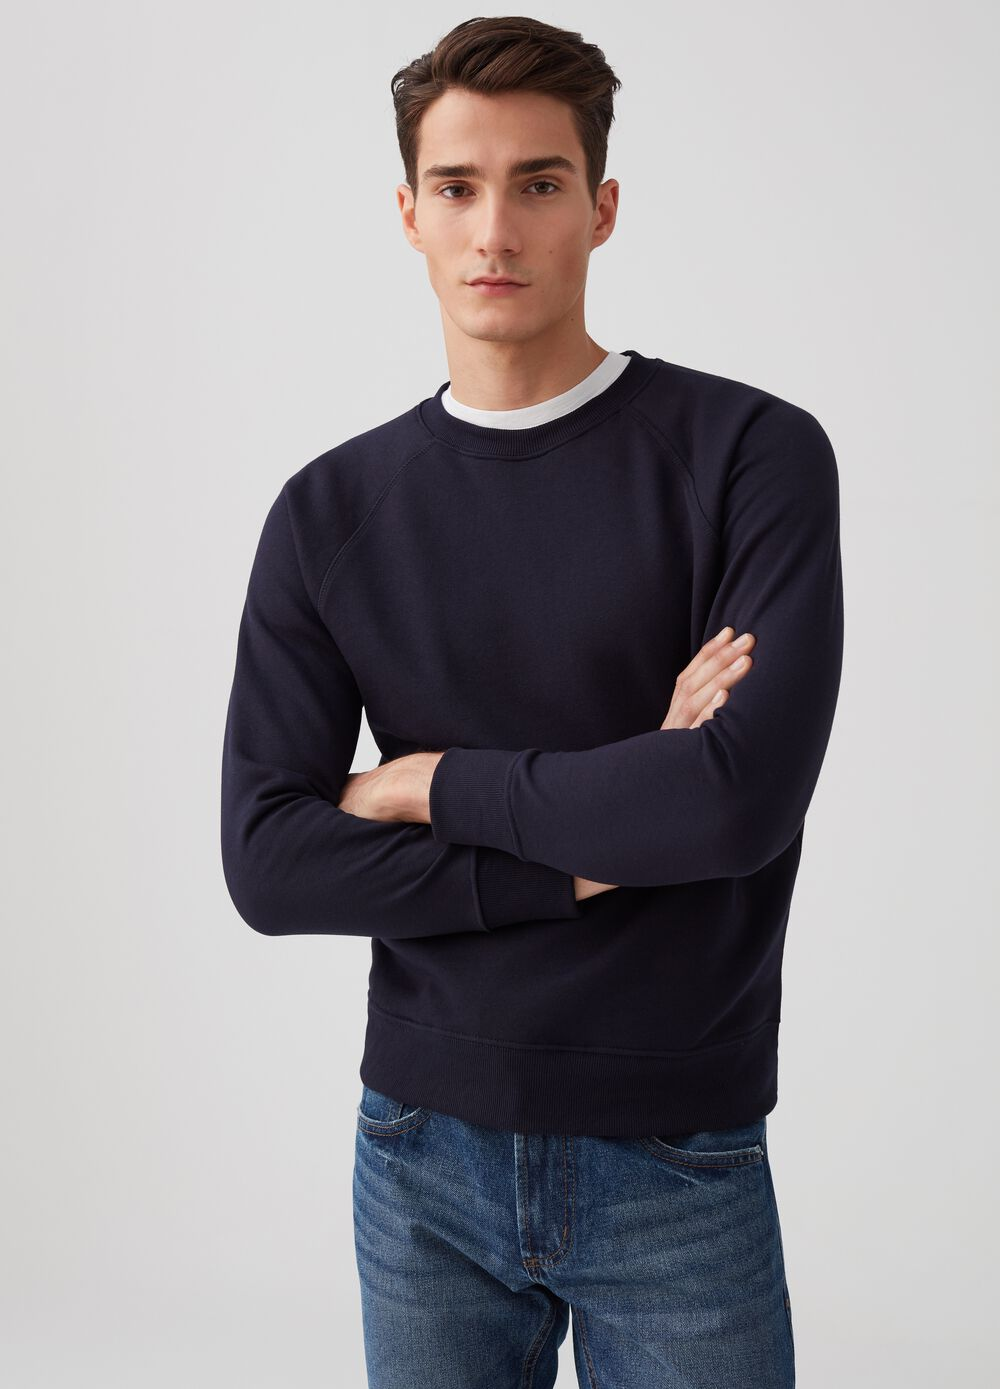 Sweatshirt with round neck and ribbing